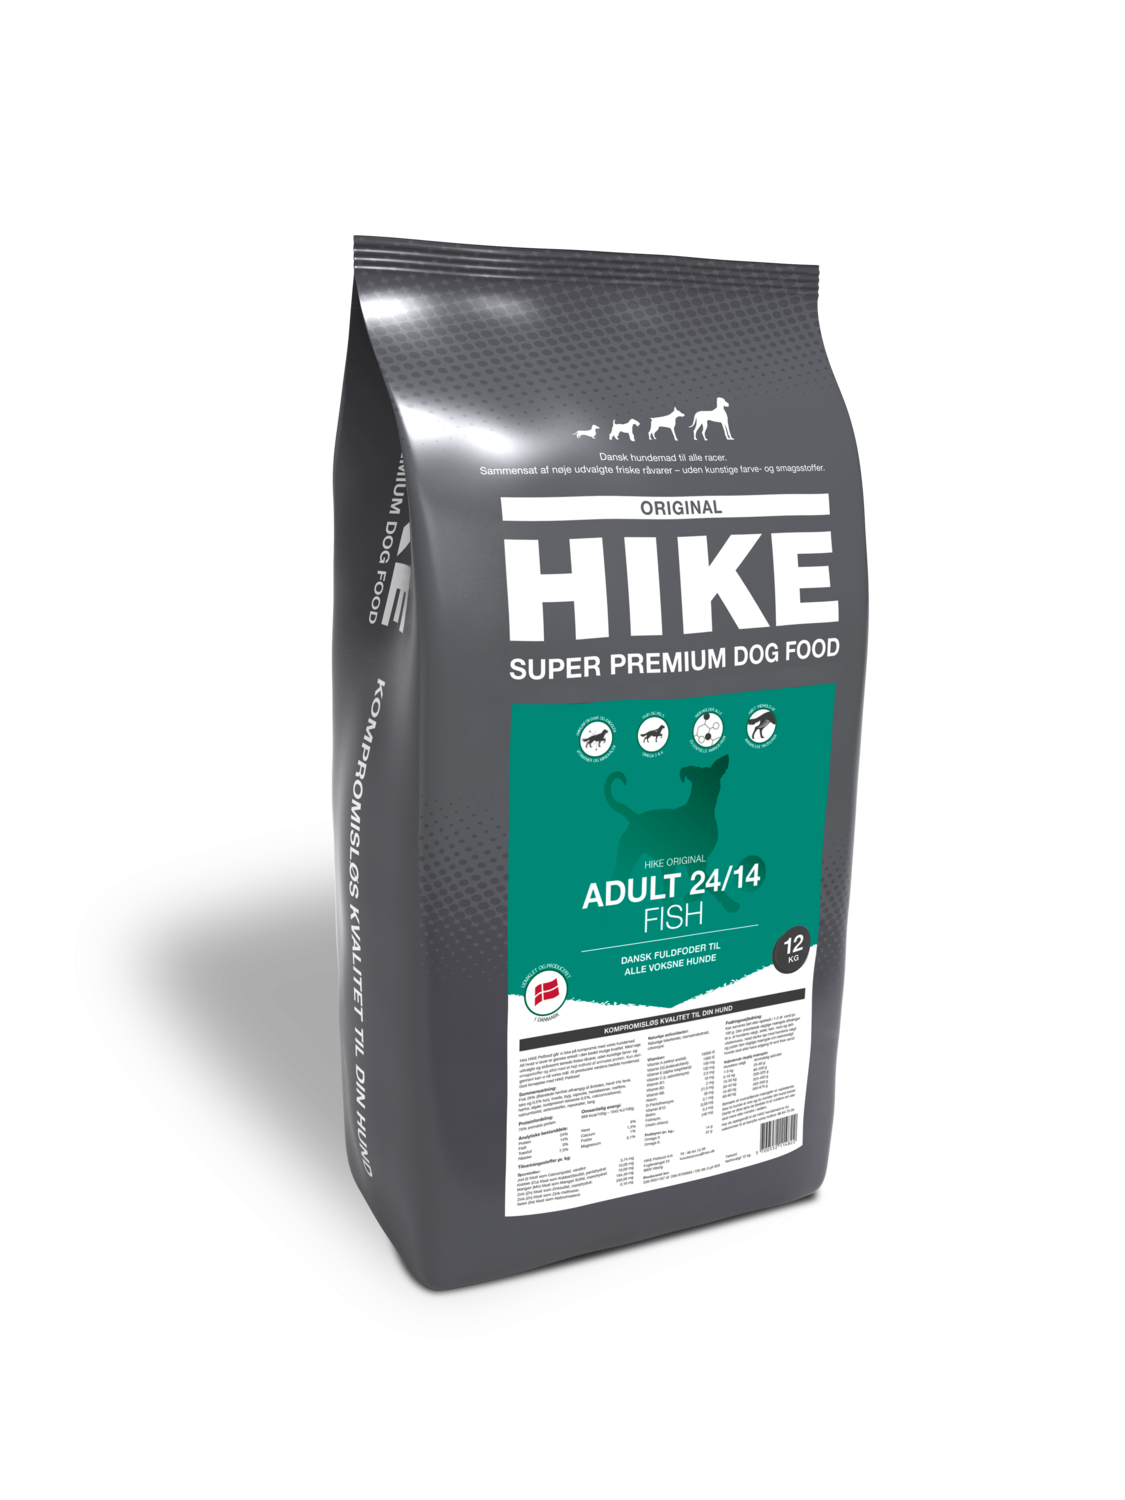 HIKE ORIGINAL Adult FISH 24/14 hundemad 12 kg